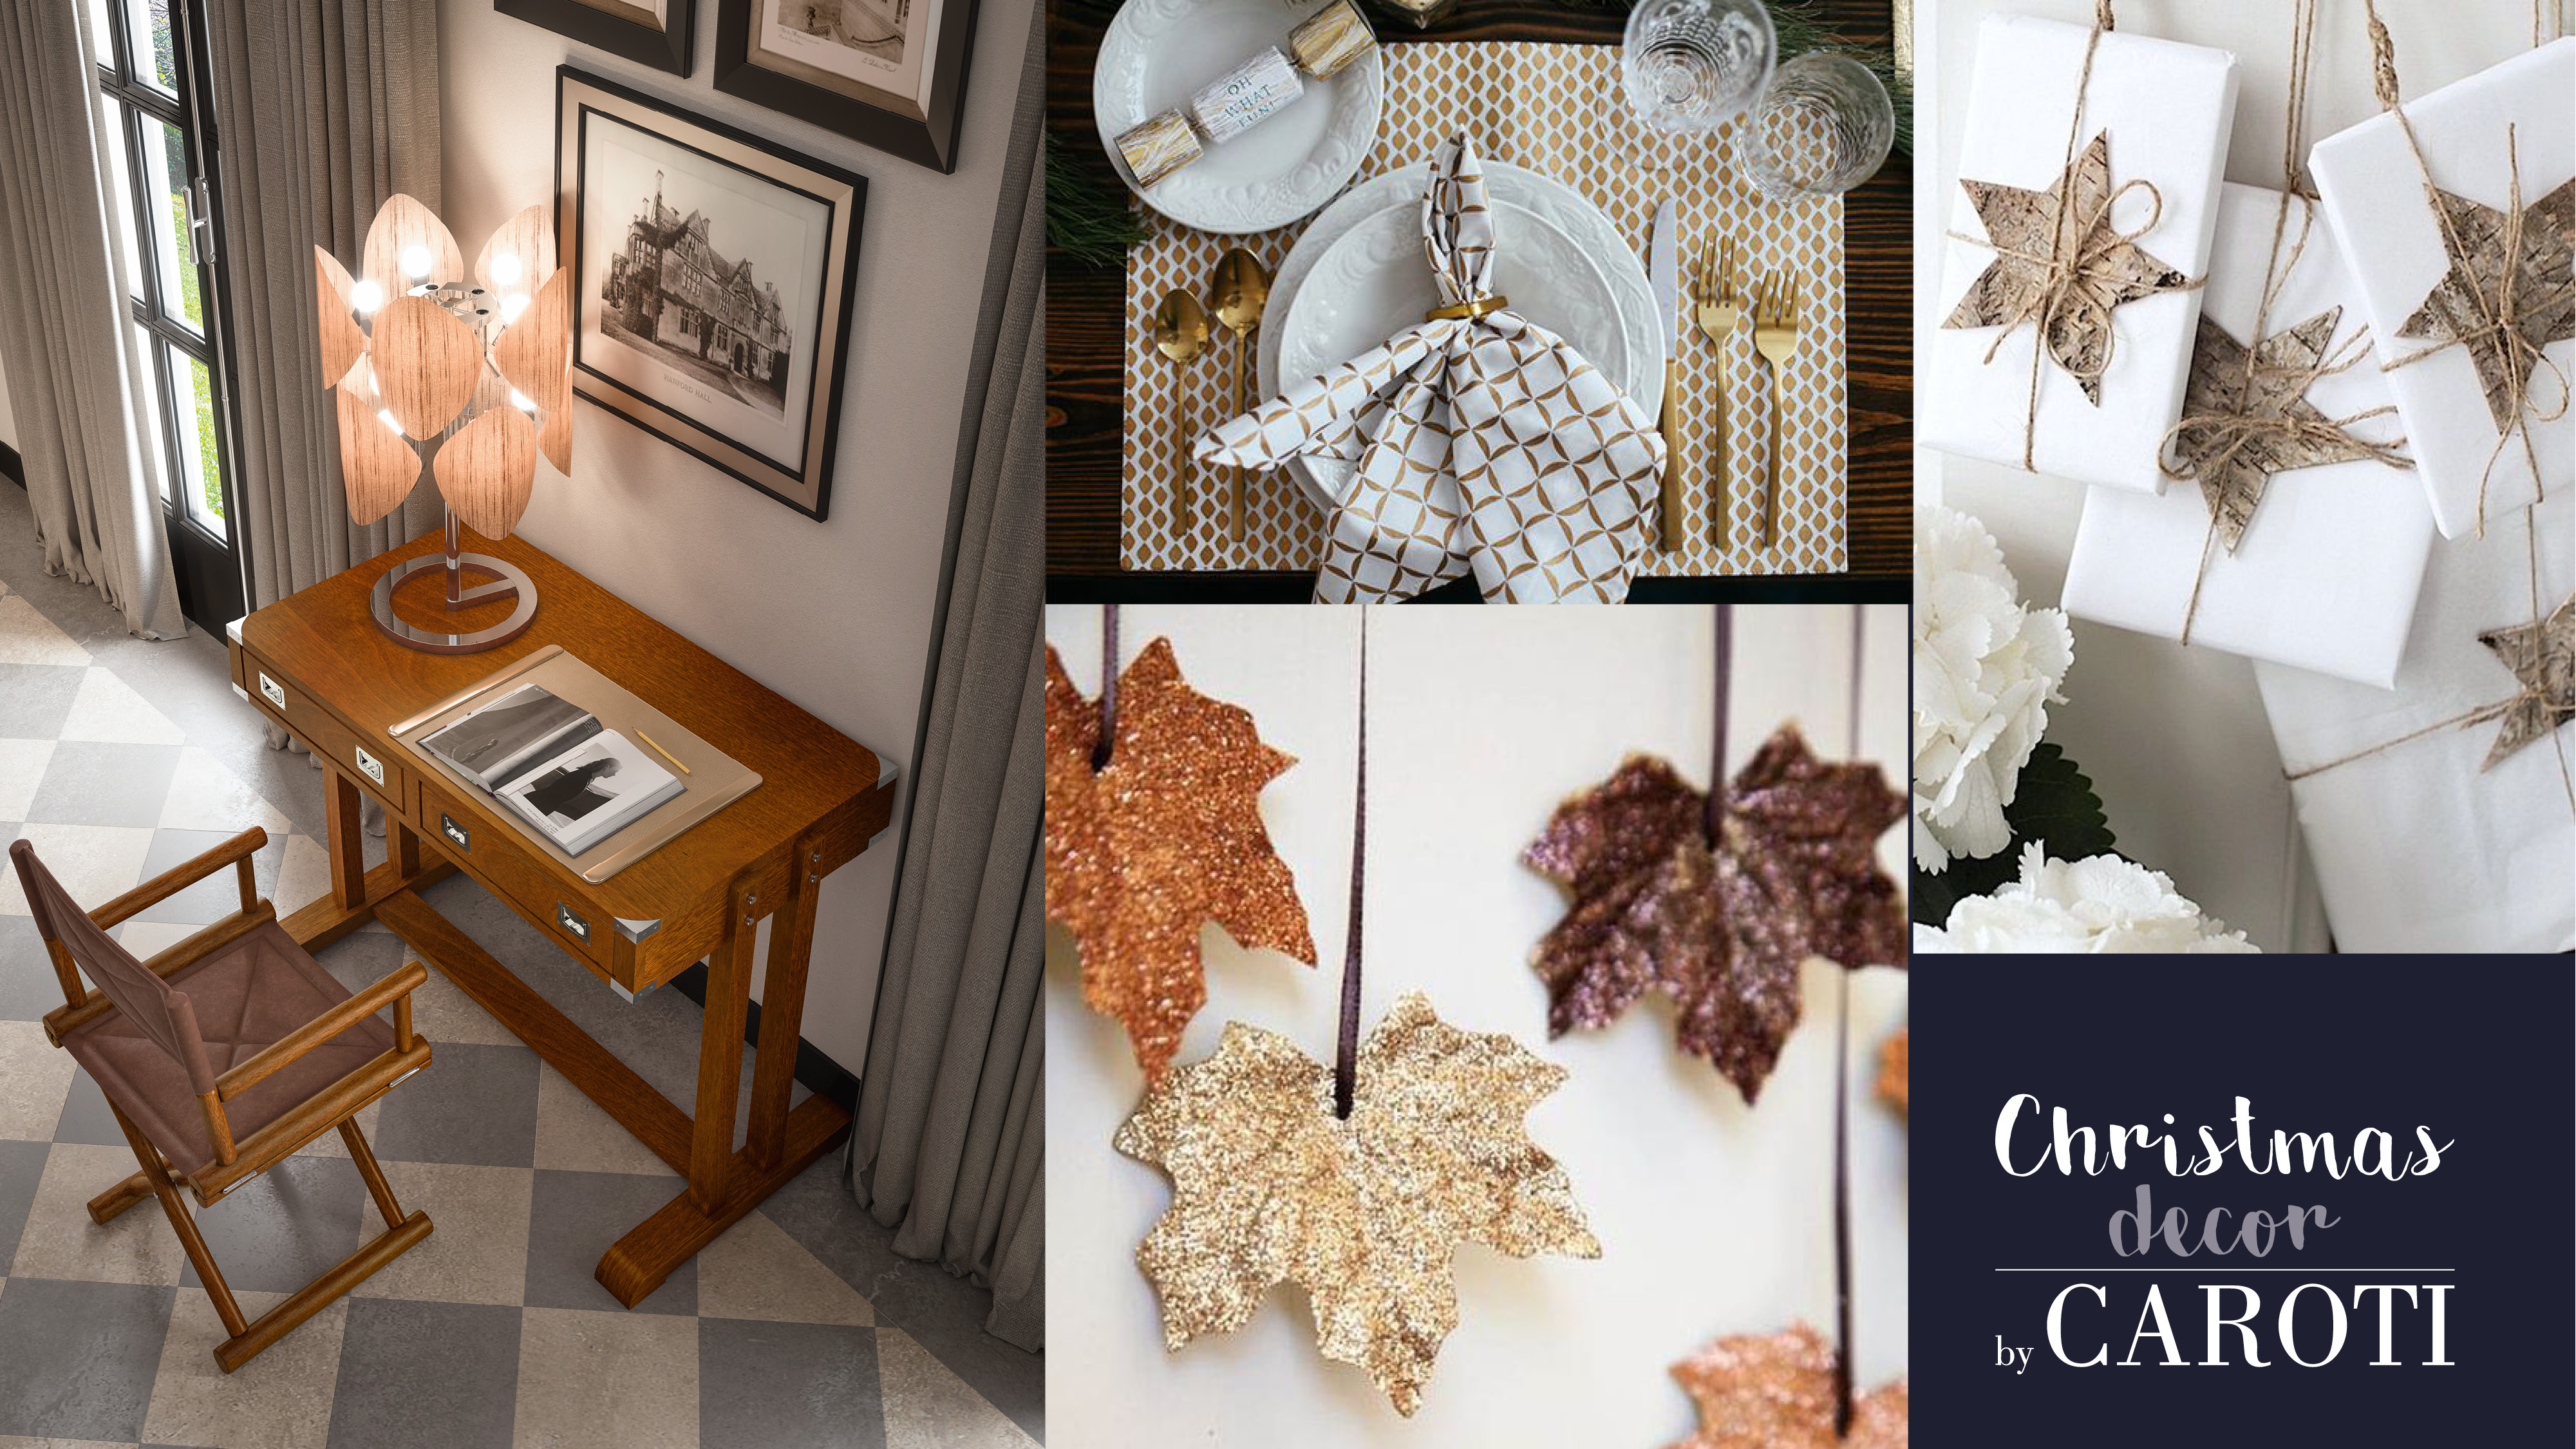 christmas decor tips by caroti in newtraditional style #2